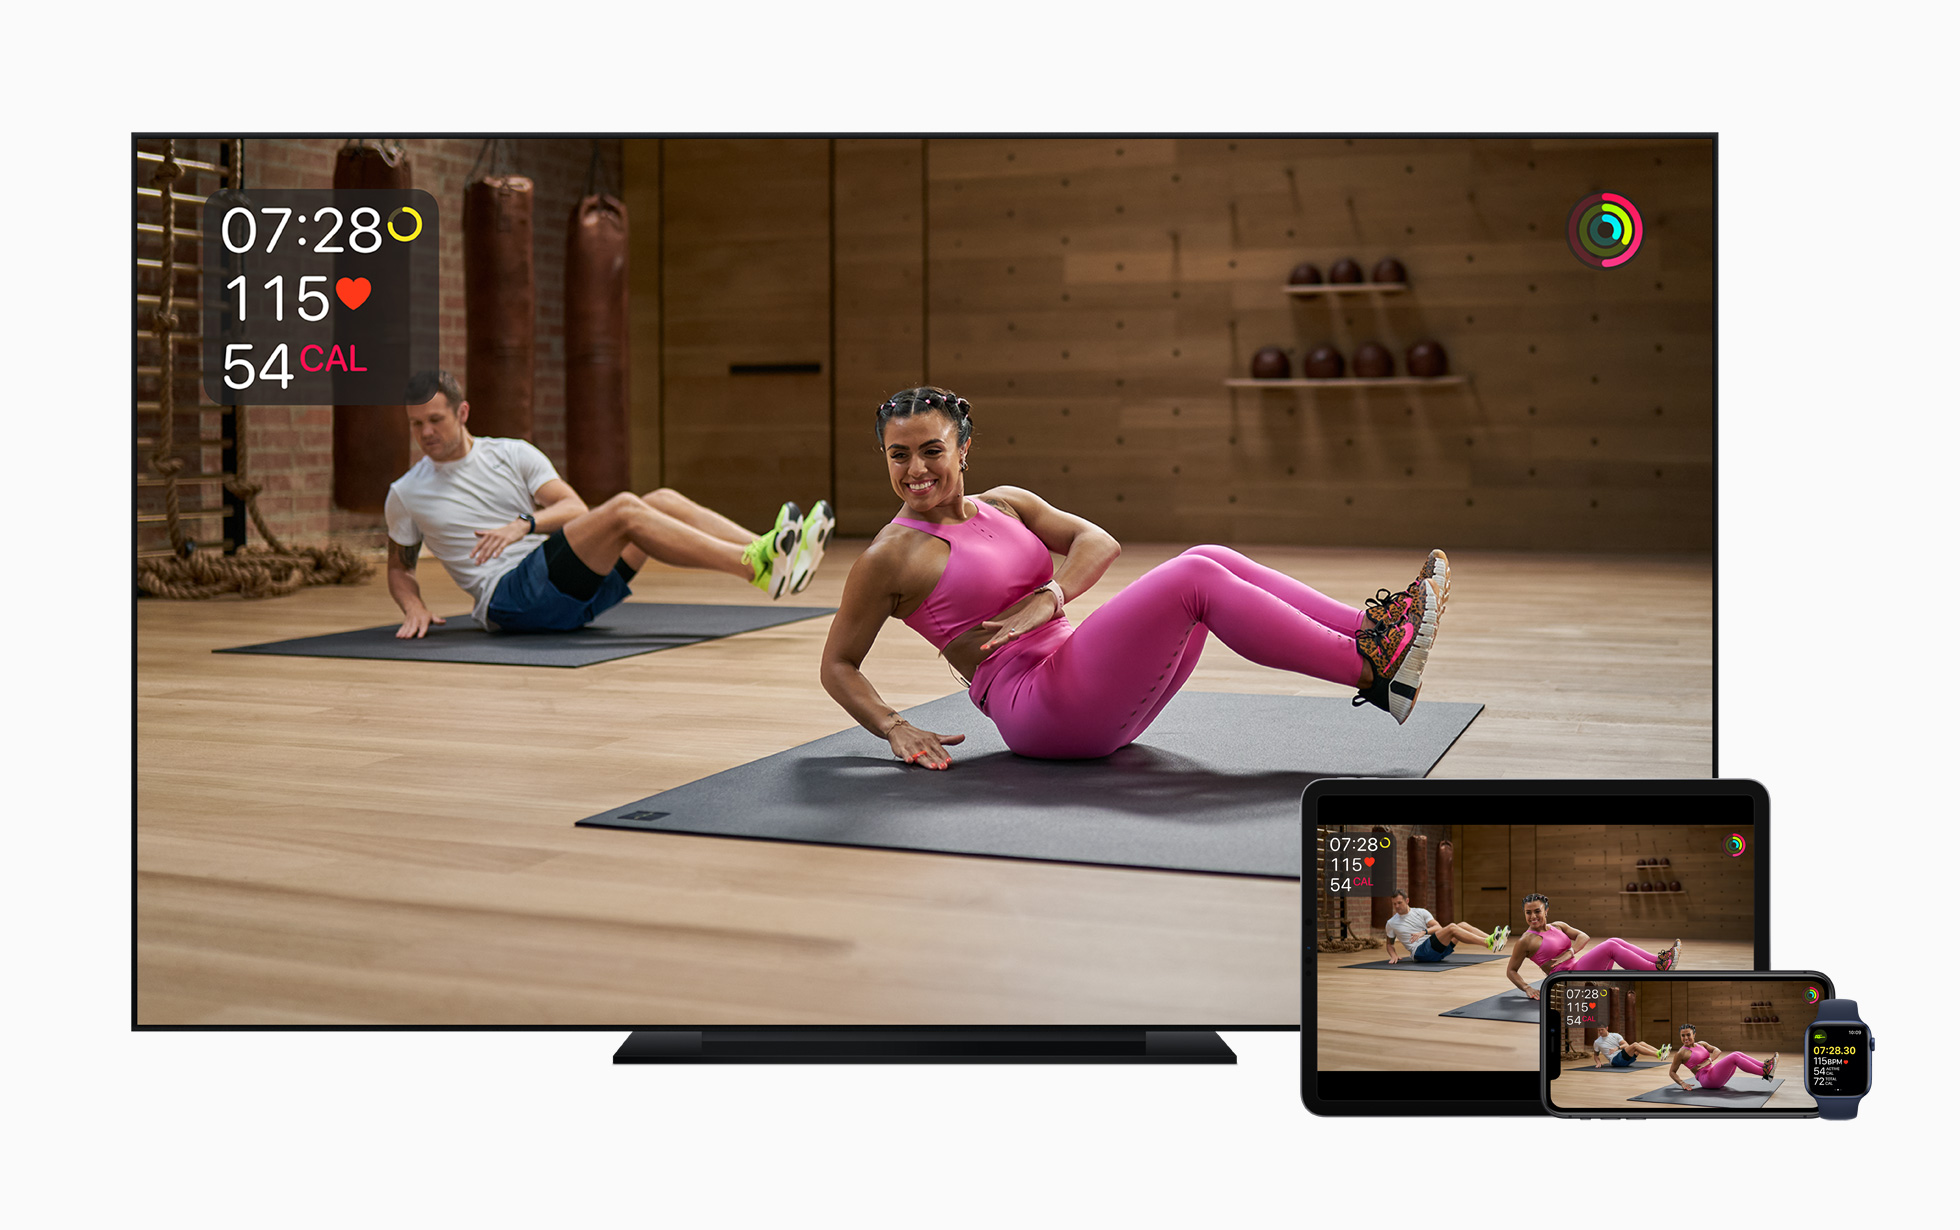 Apple Fitness+, a new virtual fitness service, will work across Apple's TV, devices and smartwatch.